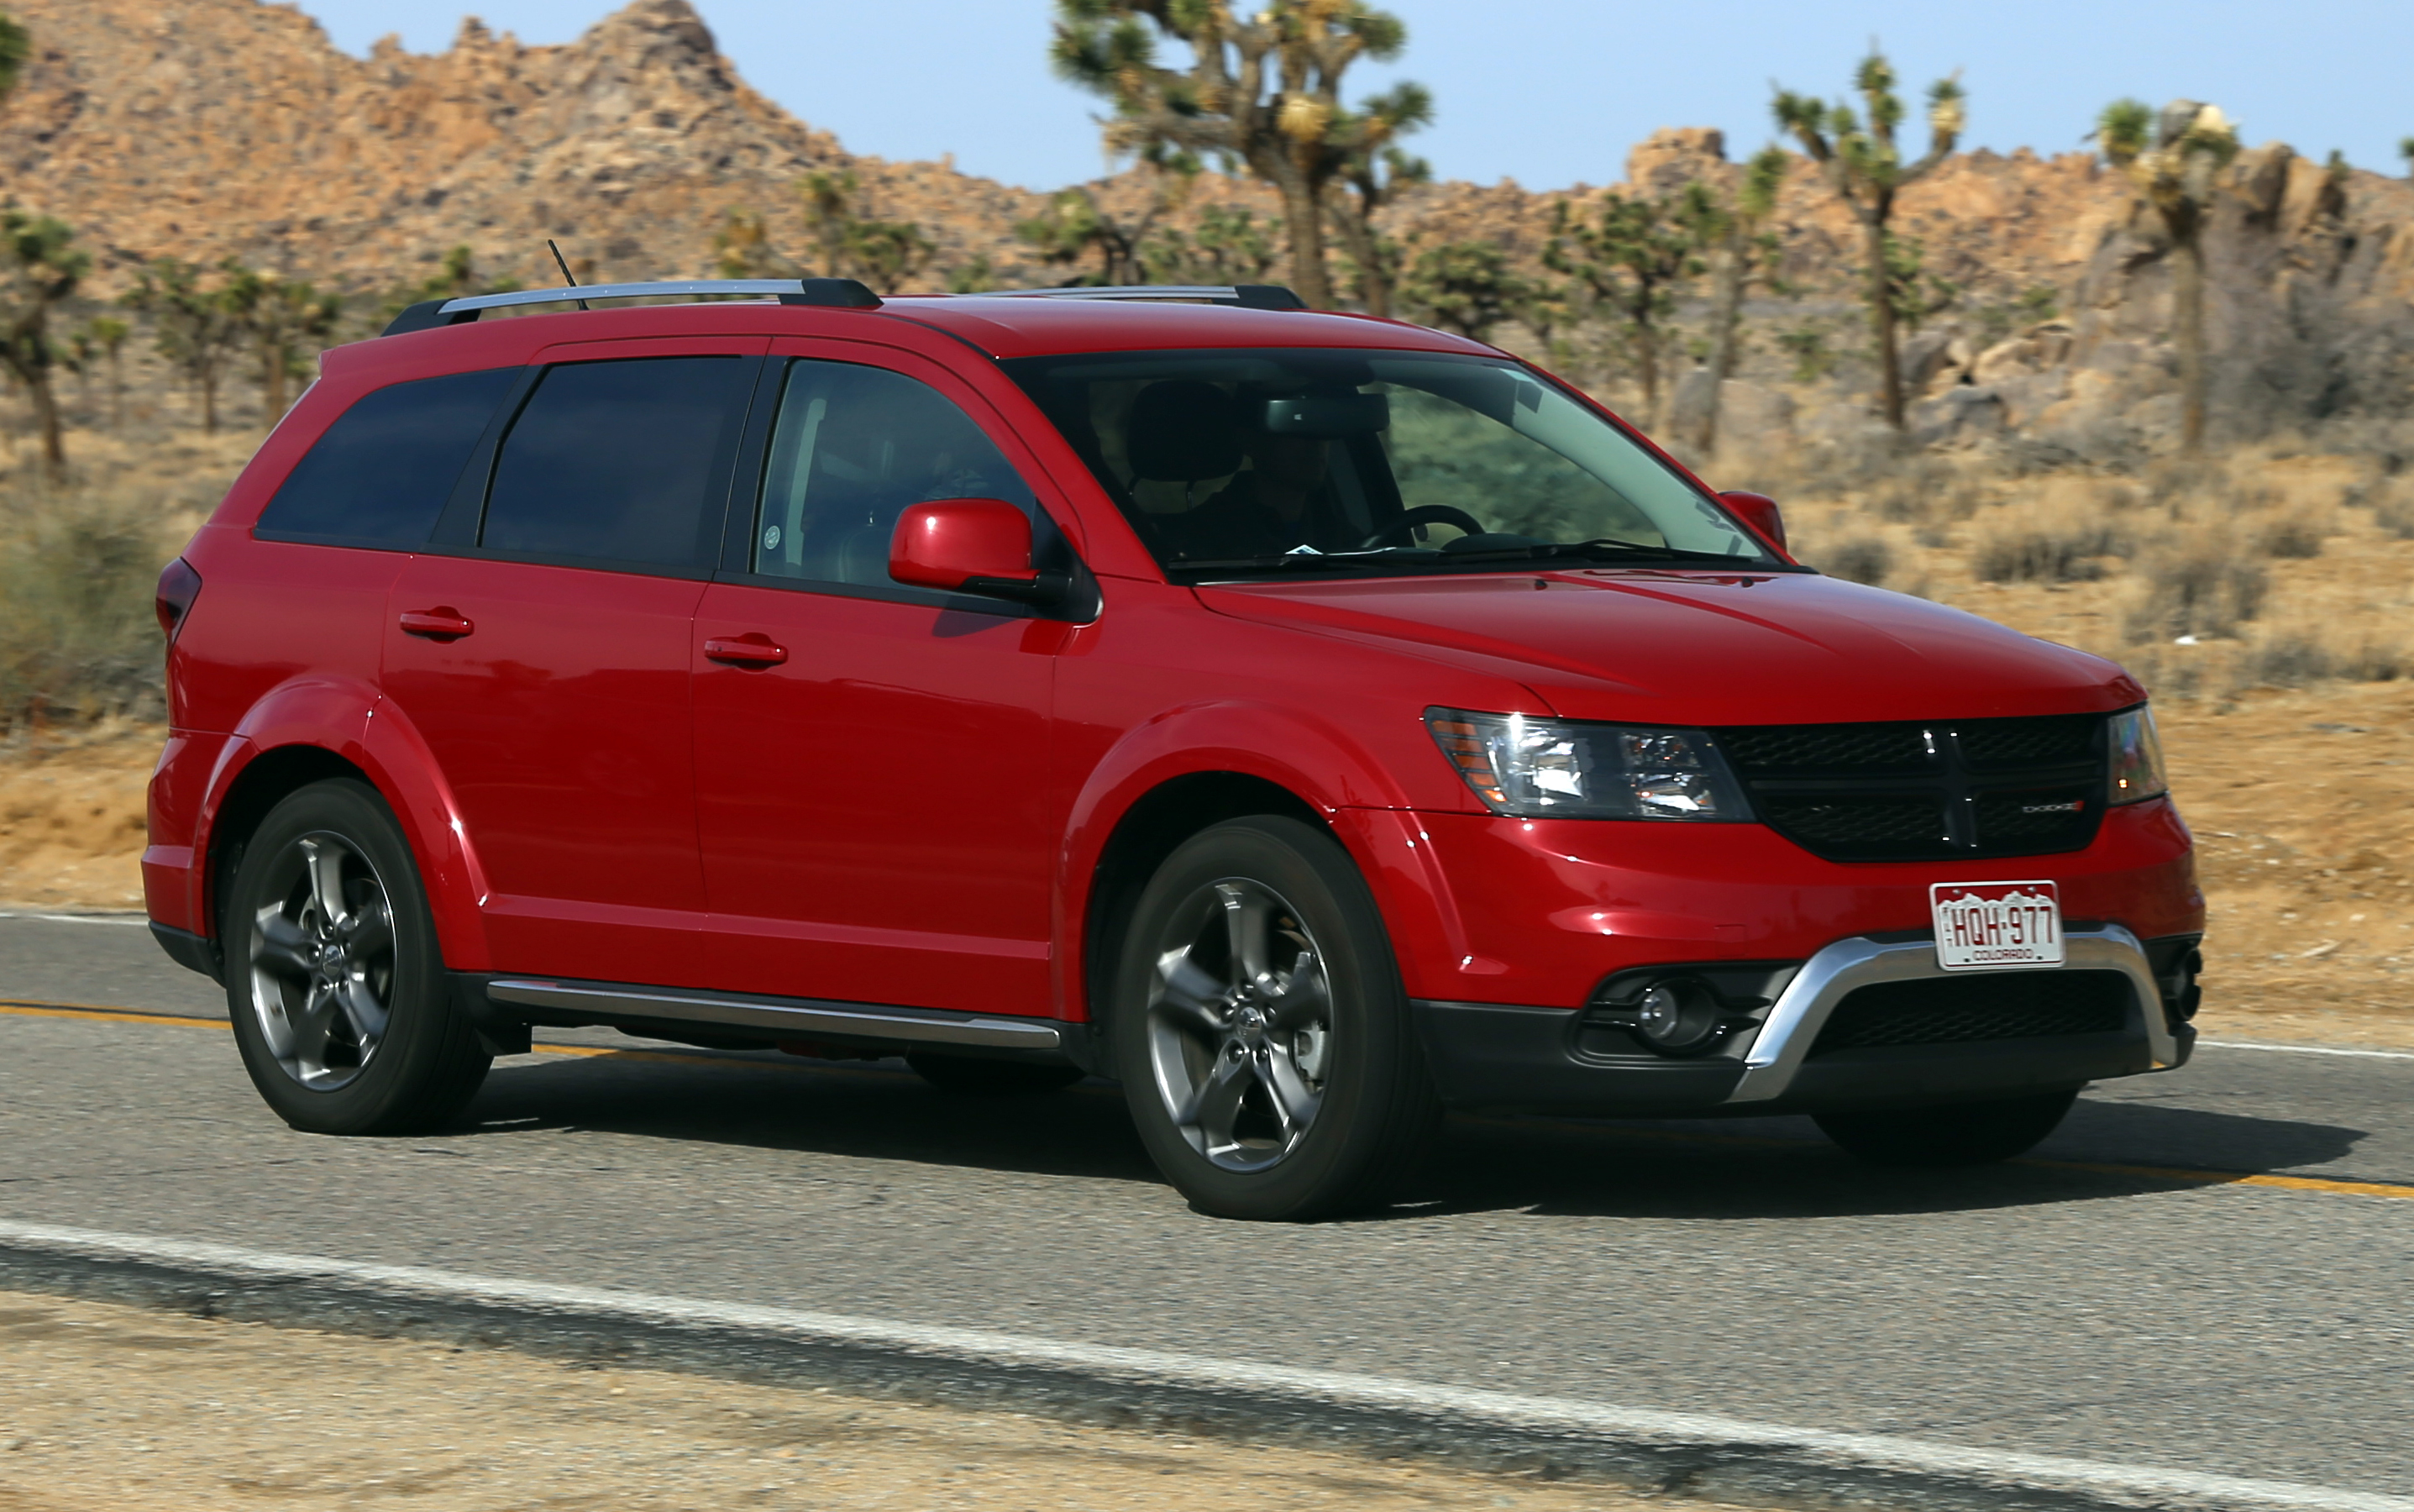 2010 Dodge Journey Interior Dimensions | Brokeasshome.com